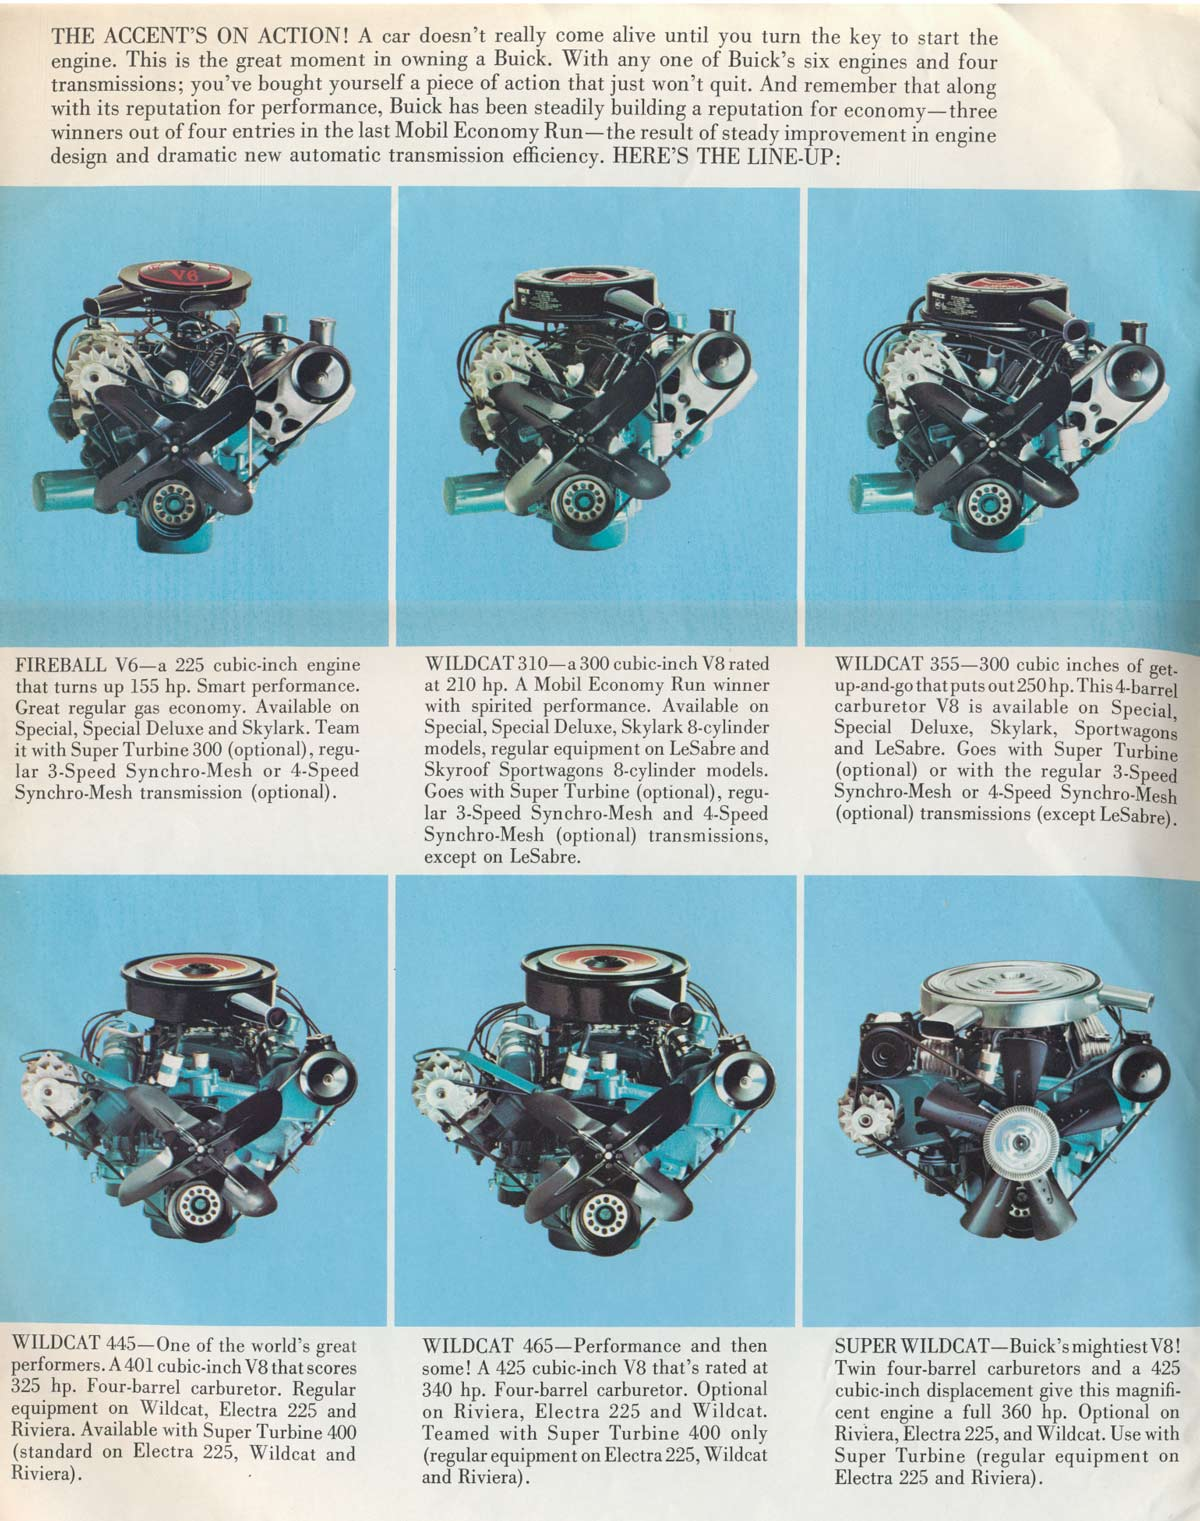 Automotive history the legendary buick nailhead v8 and the this is from a canadian brochure so the details in the text differ from what would be written in a us brochure sciox Gallery